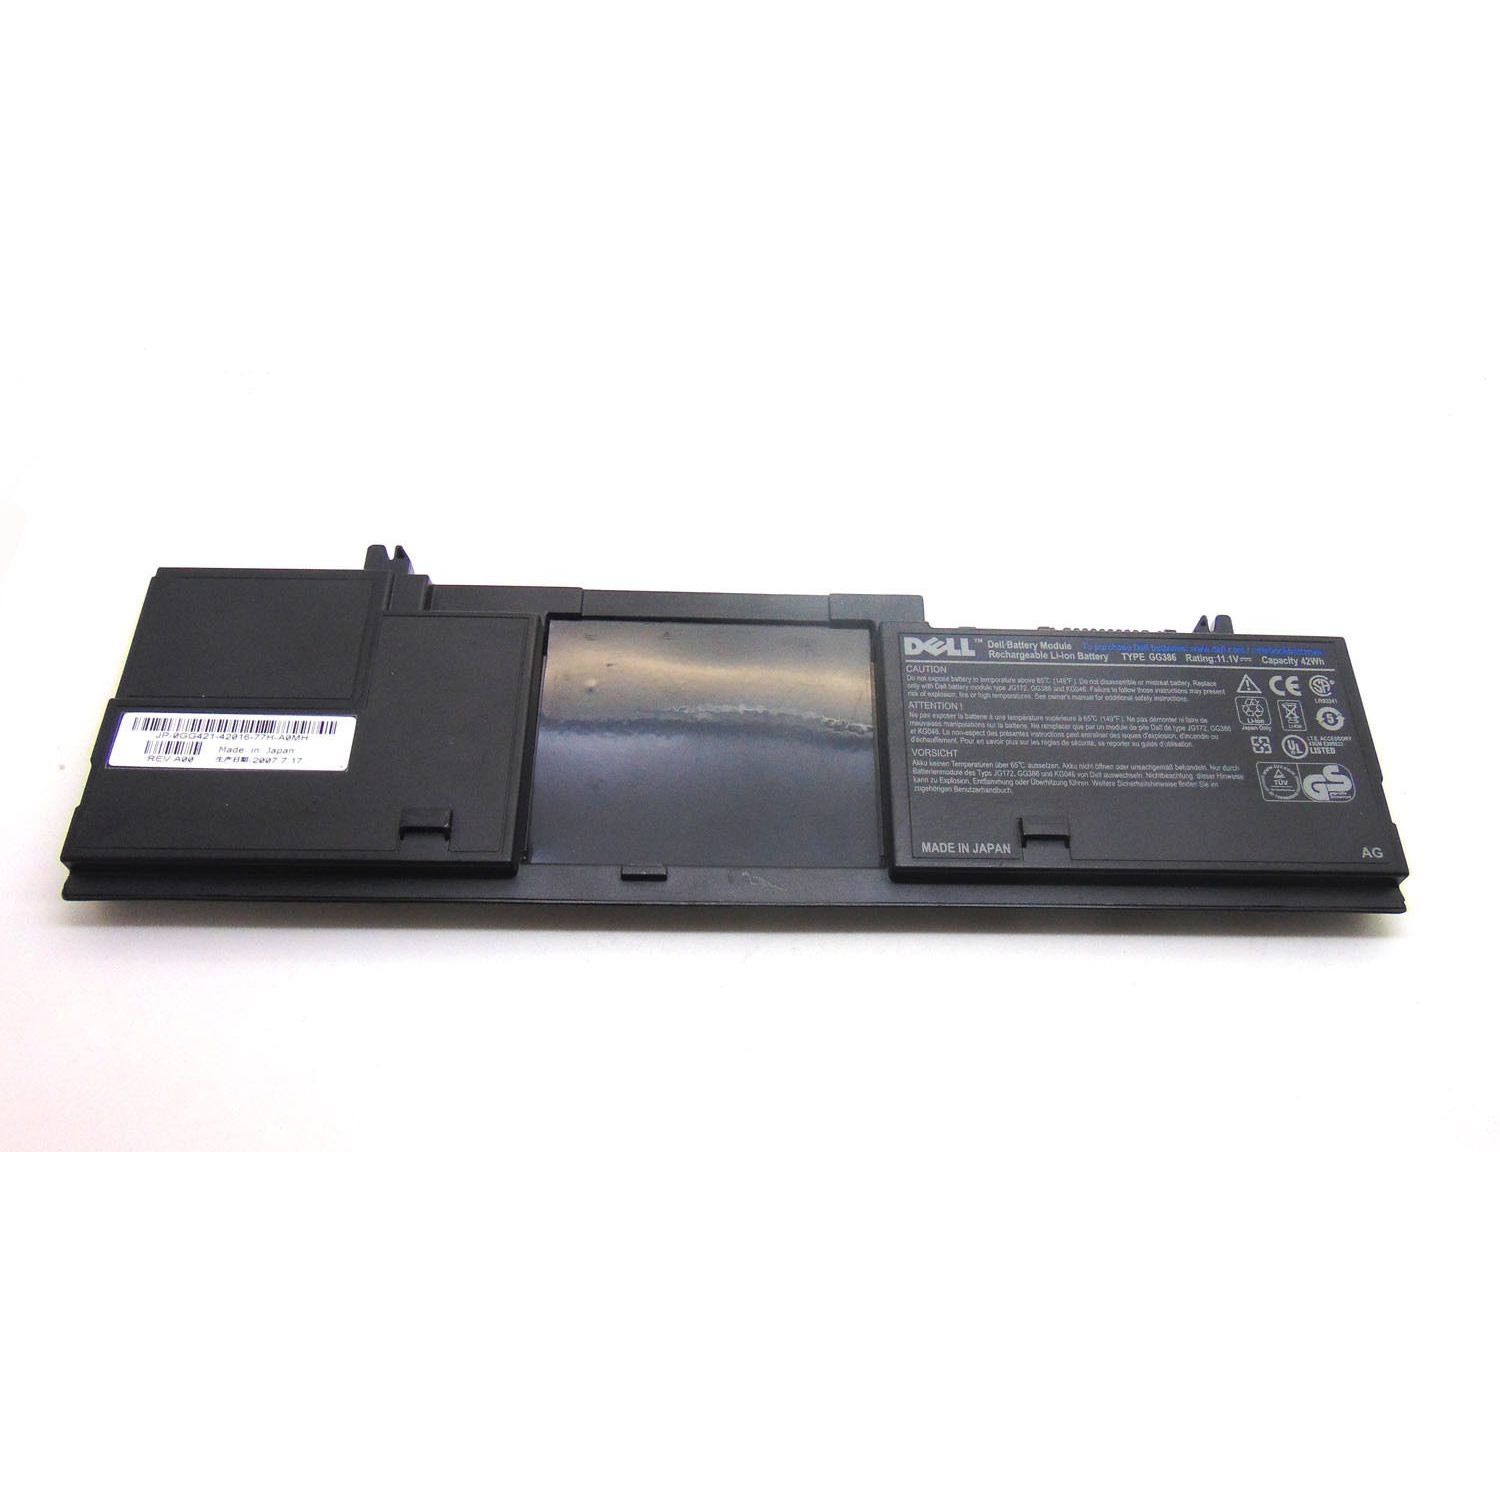 Dell FG442 GG386 HX348 batterie originale 11.1V 4000mAh, 42Wh pour ordinateur portable Dell Latitude D430, Latitude D420 séries